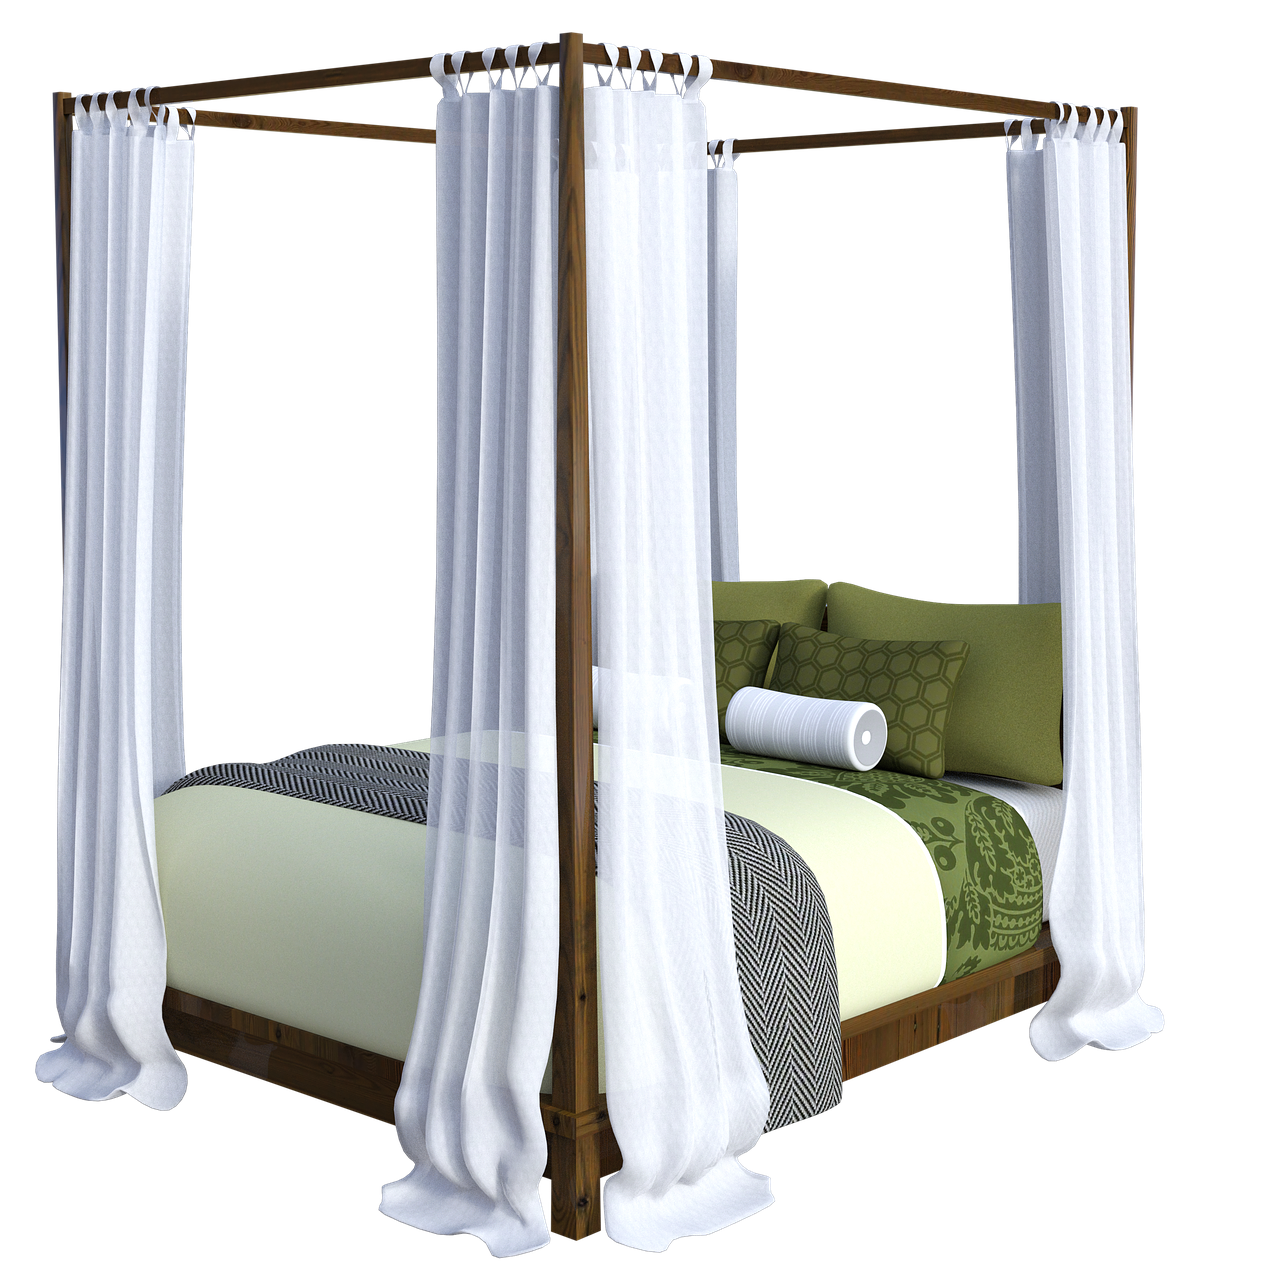 Canopy Bed Curtains Free Image On Pixabay